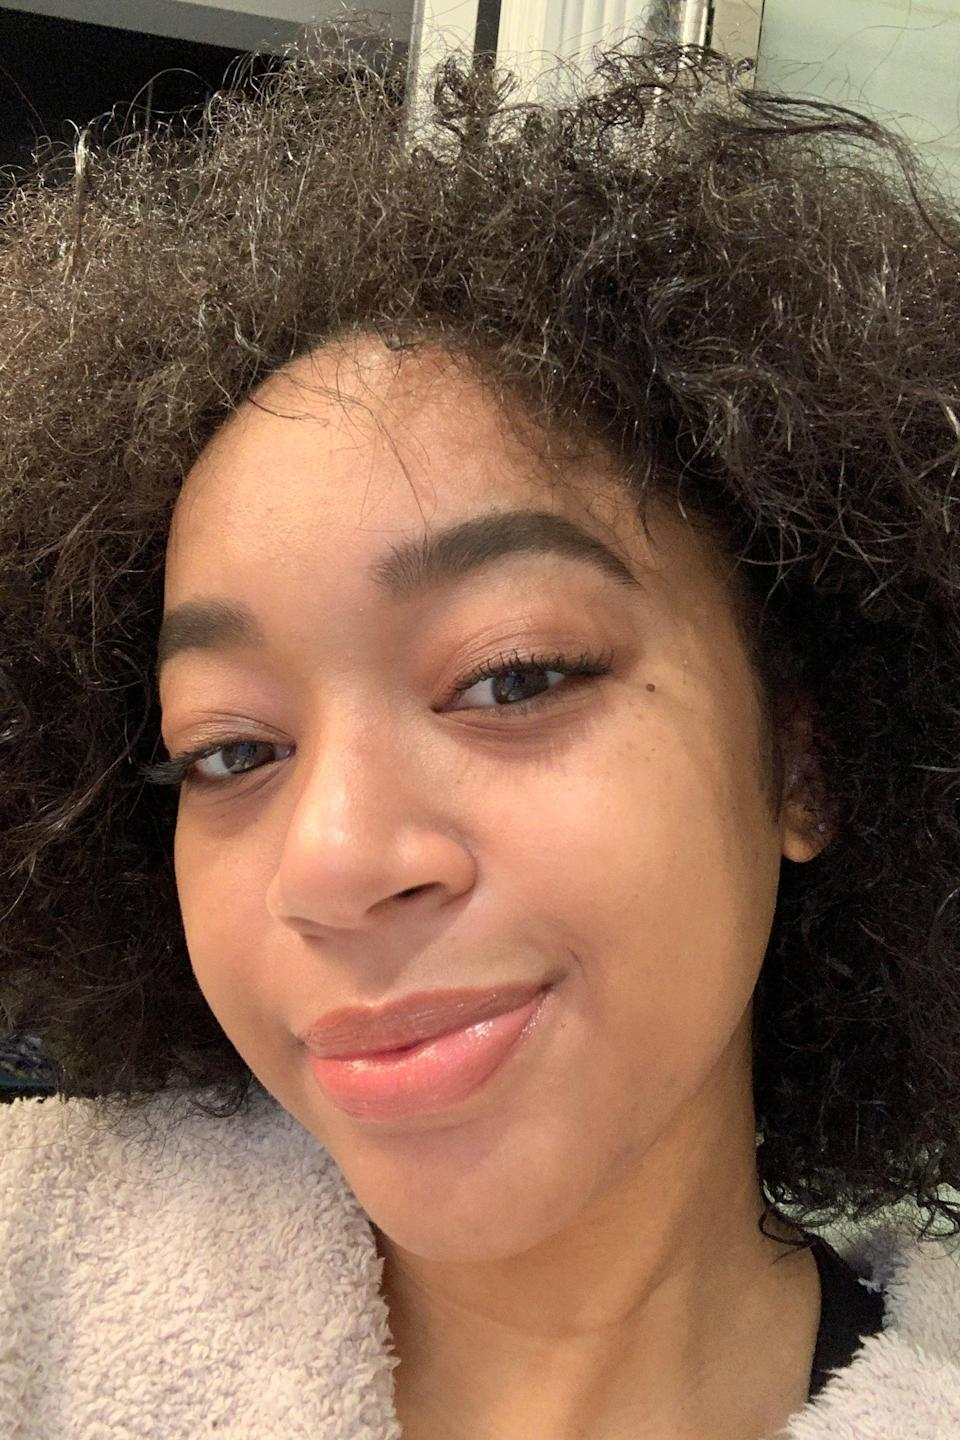 """<h2>Day 5: Peeling</h2><br>By day five, I felt like myself but <em>much </em>drier. My shedding had almost wholly subsided, but there was nothing I wanted more than to layer on a hydrating sheet mask. While my skin did feel parched, I was relieved not to wake up to large patches of skin flaking off my face. I continued with the PCA post-care regimen and layered on some of my go-to Supergoop sunscreen before heading outdoors for extra hydration and protection. <br><br>If you haven't been<a href=""""https://www.refinery29.com/en-us/best-face-sunscreen"""" rel=""""nofollow noopener"""" target=""""_blank"""" data-ylk=""""slk:diligent with sun care"""" class=""""link rapid-noclick-resp""""> diligent with sun care </a>before a chemical peel, don't plan on slacking after one: It's the single most crucial step to protecting your skin, especially while it's vulnerable. """"Sunscreen is an absolute non-negotiable,"""" Dr. Chilukuri says. Skipping out on sunscreen could lead to burning or worsening discoloration, which you can easily avoid by shielding your skin from the sun."""